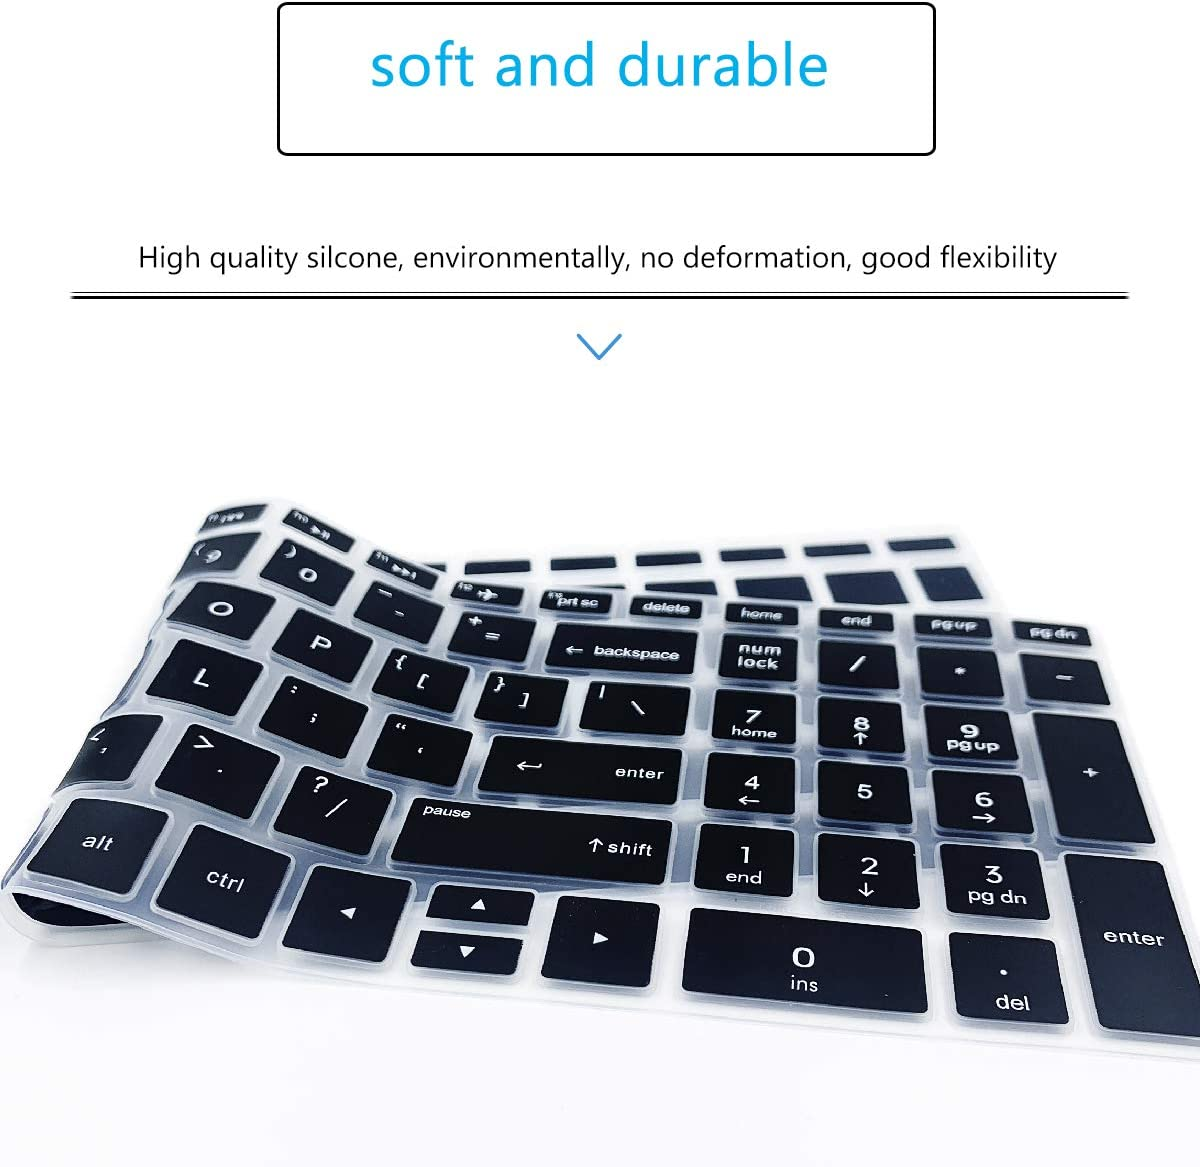 """Keyboard Cover for HP Laptop 17-by 17-bs 17-ca 17.3/"""" Model 17-by1053dx//by2053c//by3051cl//by3613dx 17-bs011dx//bs049dx //bs021ds//bs025cl//bs049dx//bs153cl HP Laptop 15-bs 15-da 15-dy 15-ef 15t 15z-Black"""